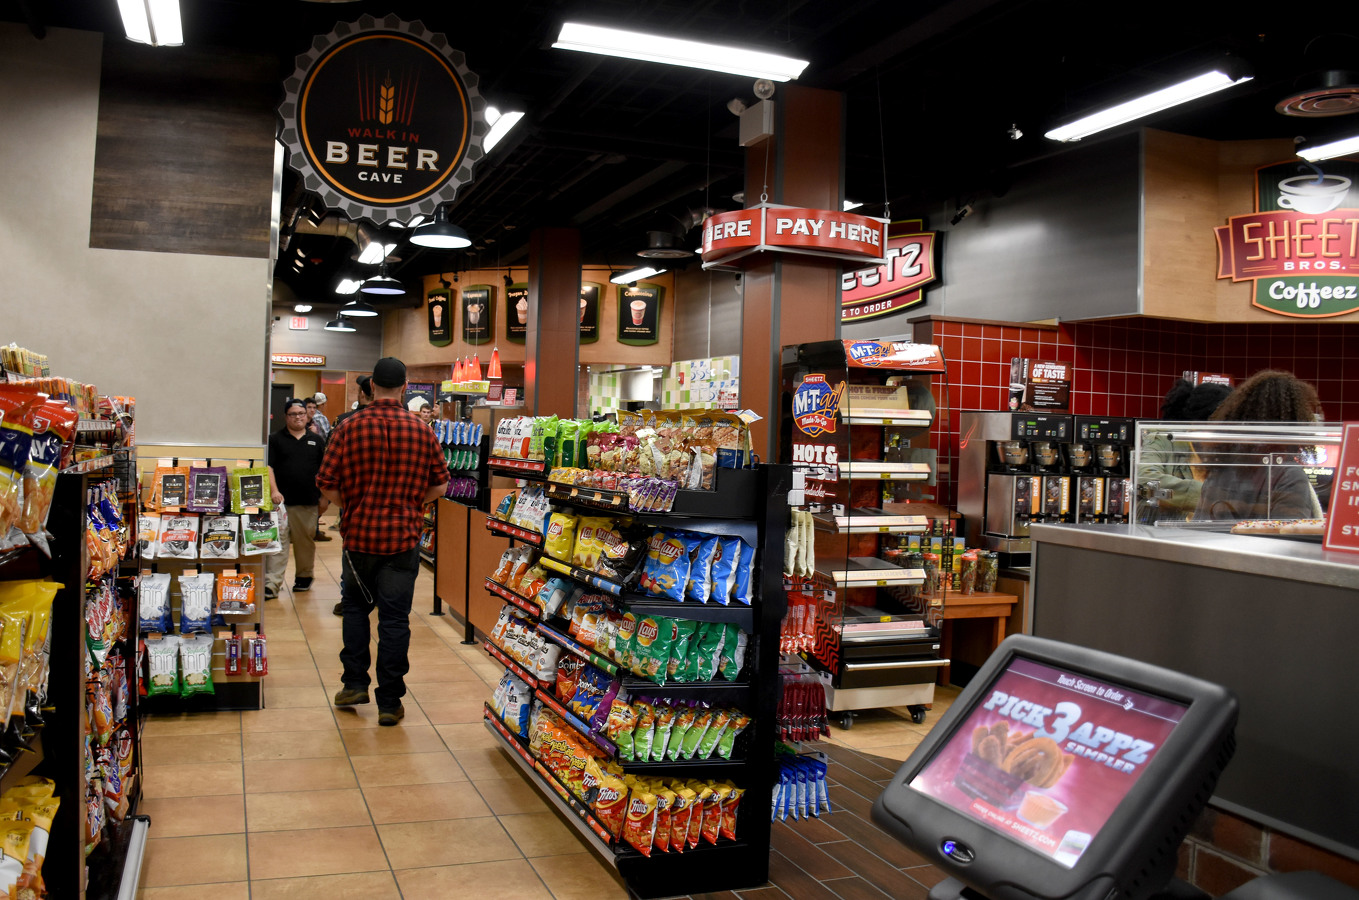 Your shopteddybears9.ml account is separate from your personal shopteddybears9.ml You can't use Sheetz points on shopteddybears9.ml They cater to retail location purchasing and other processes. For point system information, please contact the Sheetz Corporate CS team at